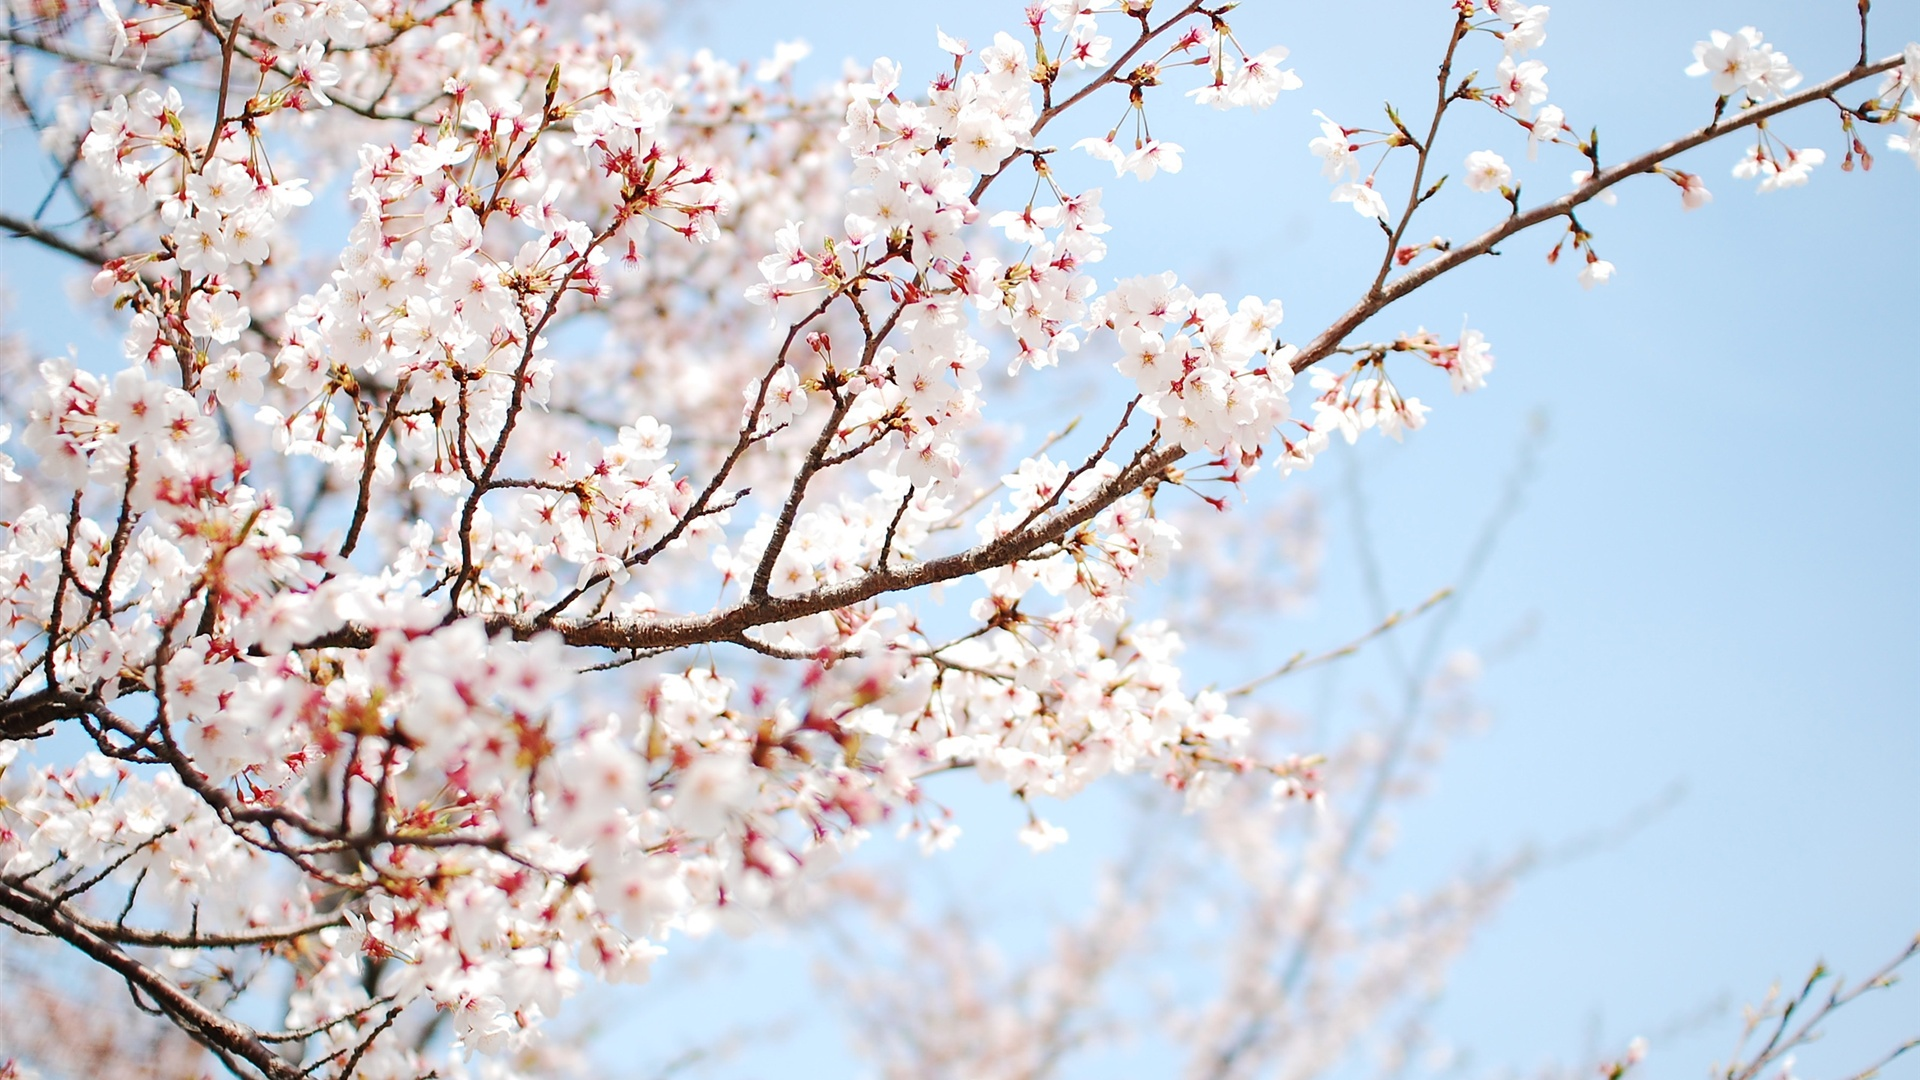 Cherry blossoms international dating site